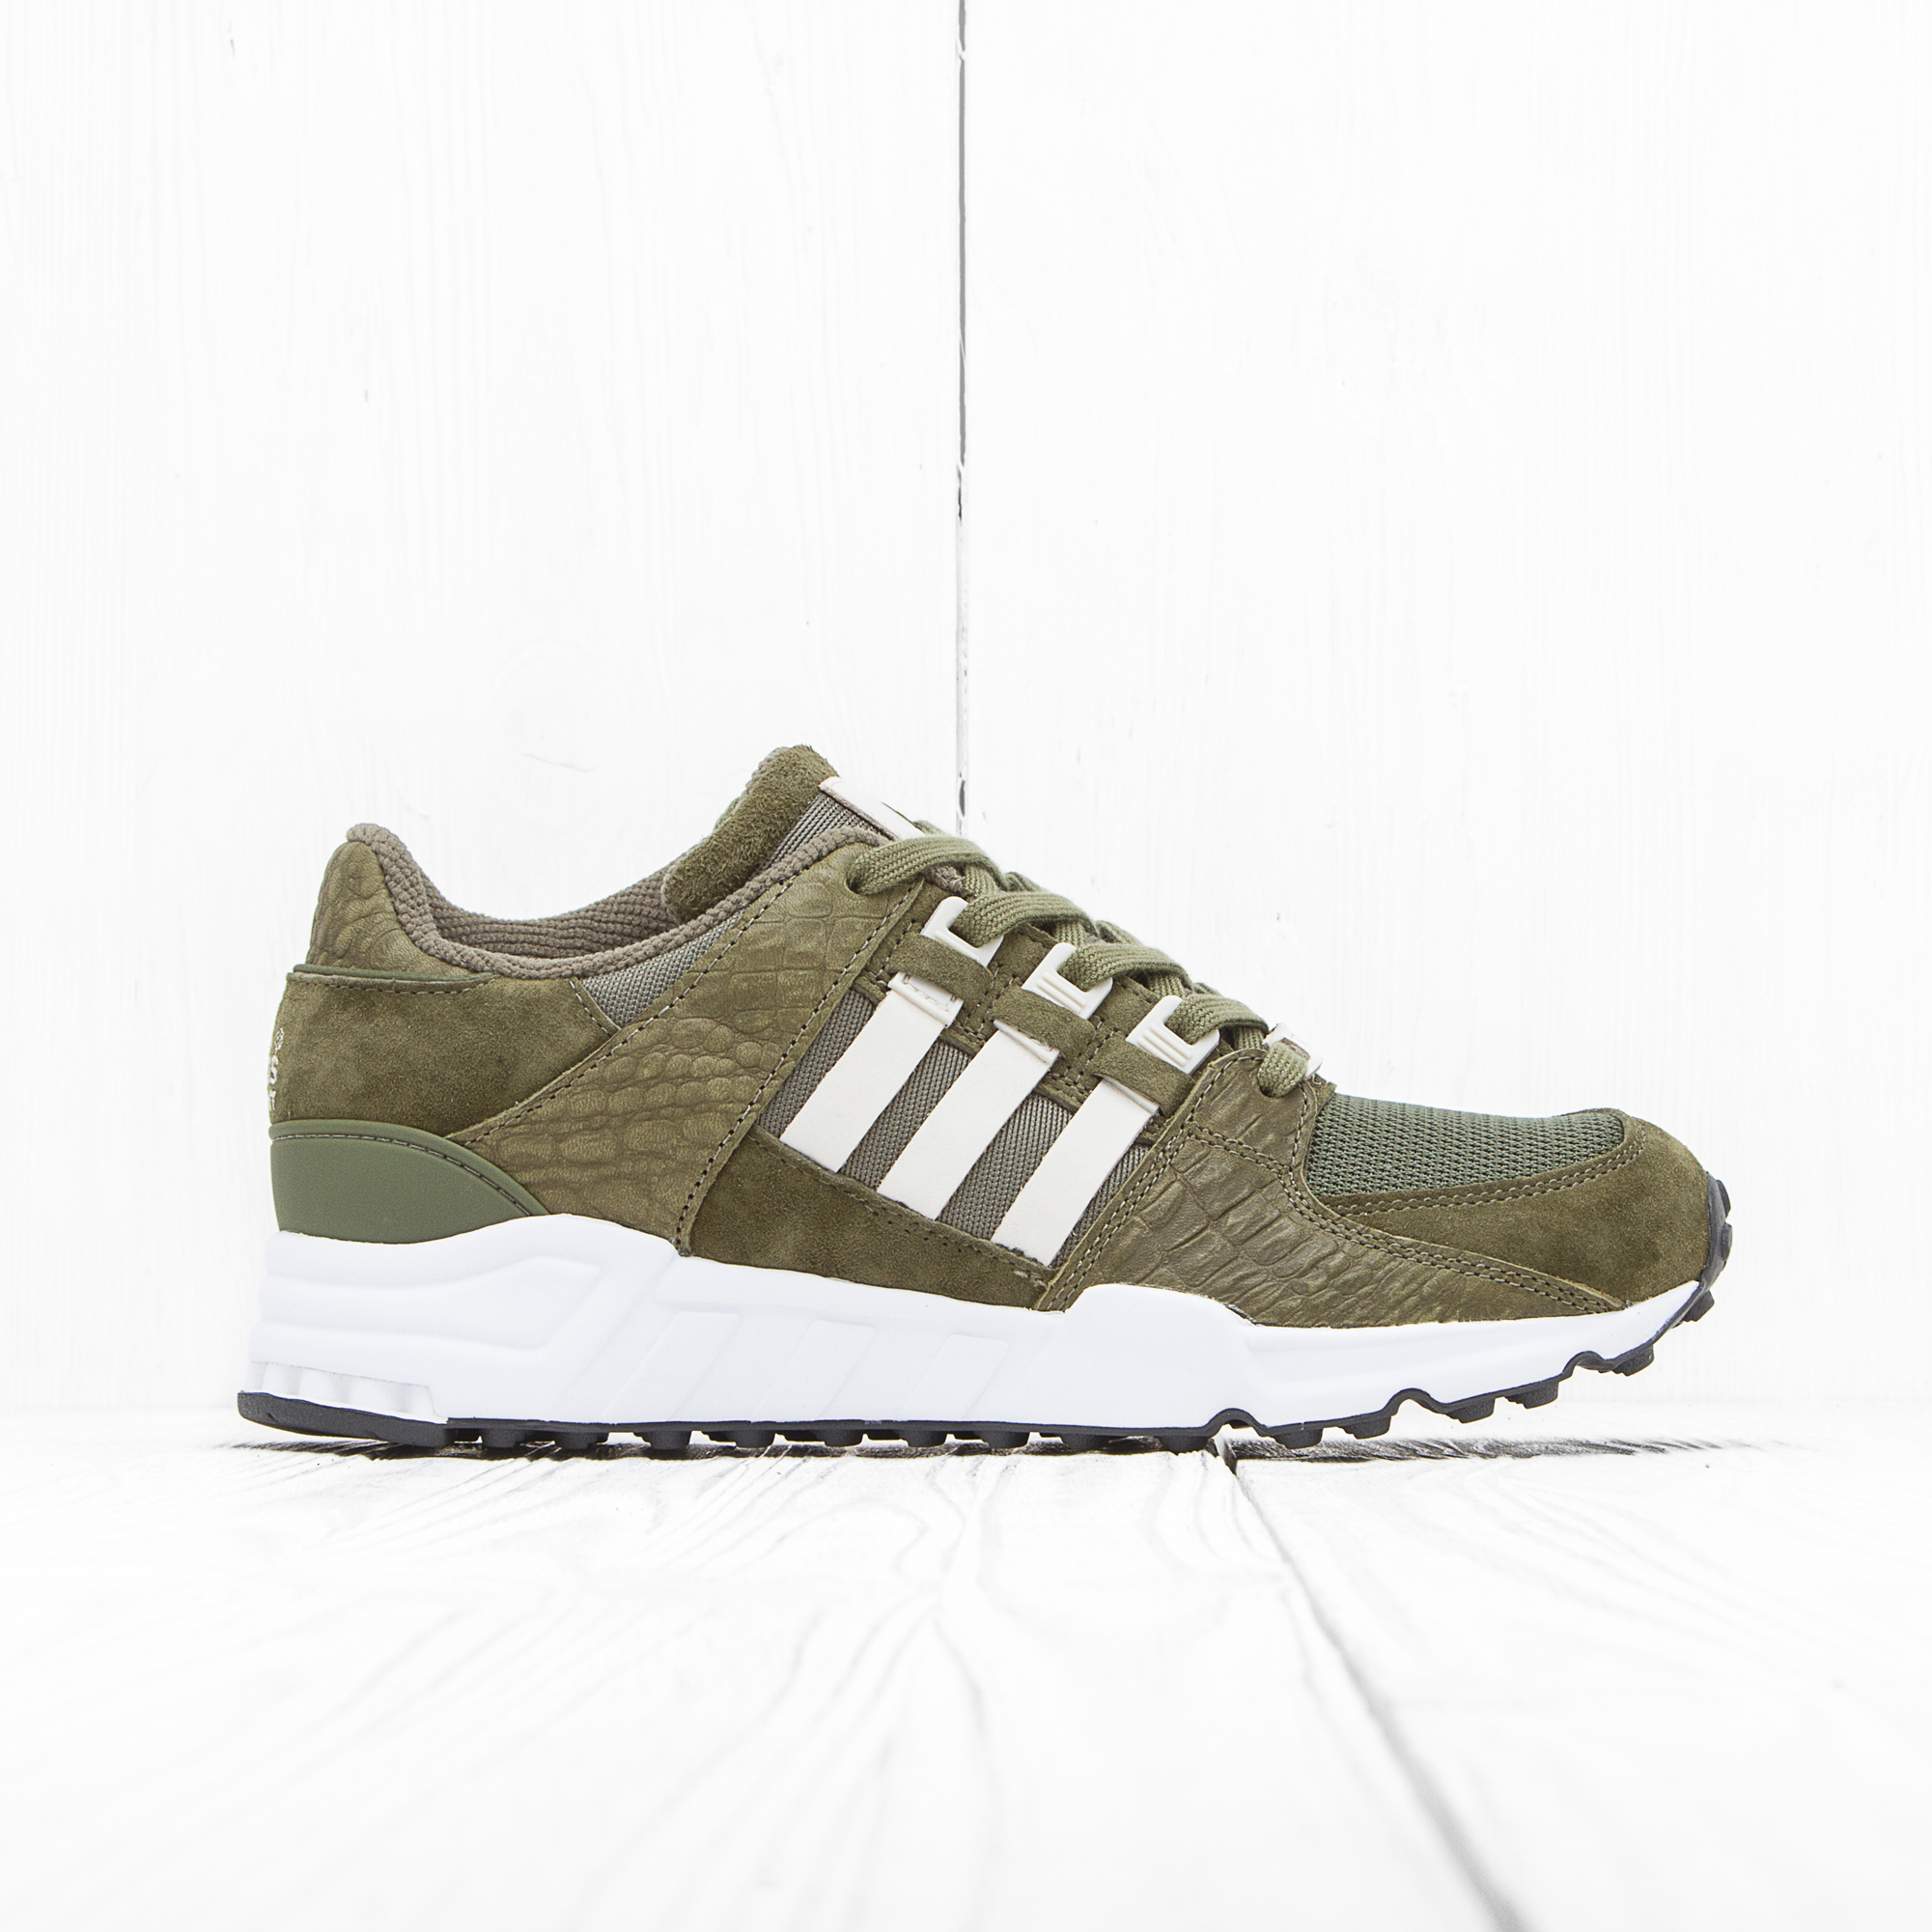 Кроссовки Adidas EQUIPMENT RUNNING S Olive Cargo/Clea Brown/Ftwr White